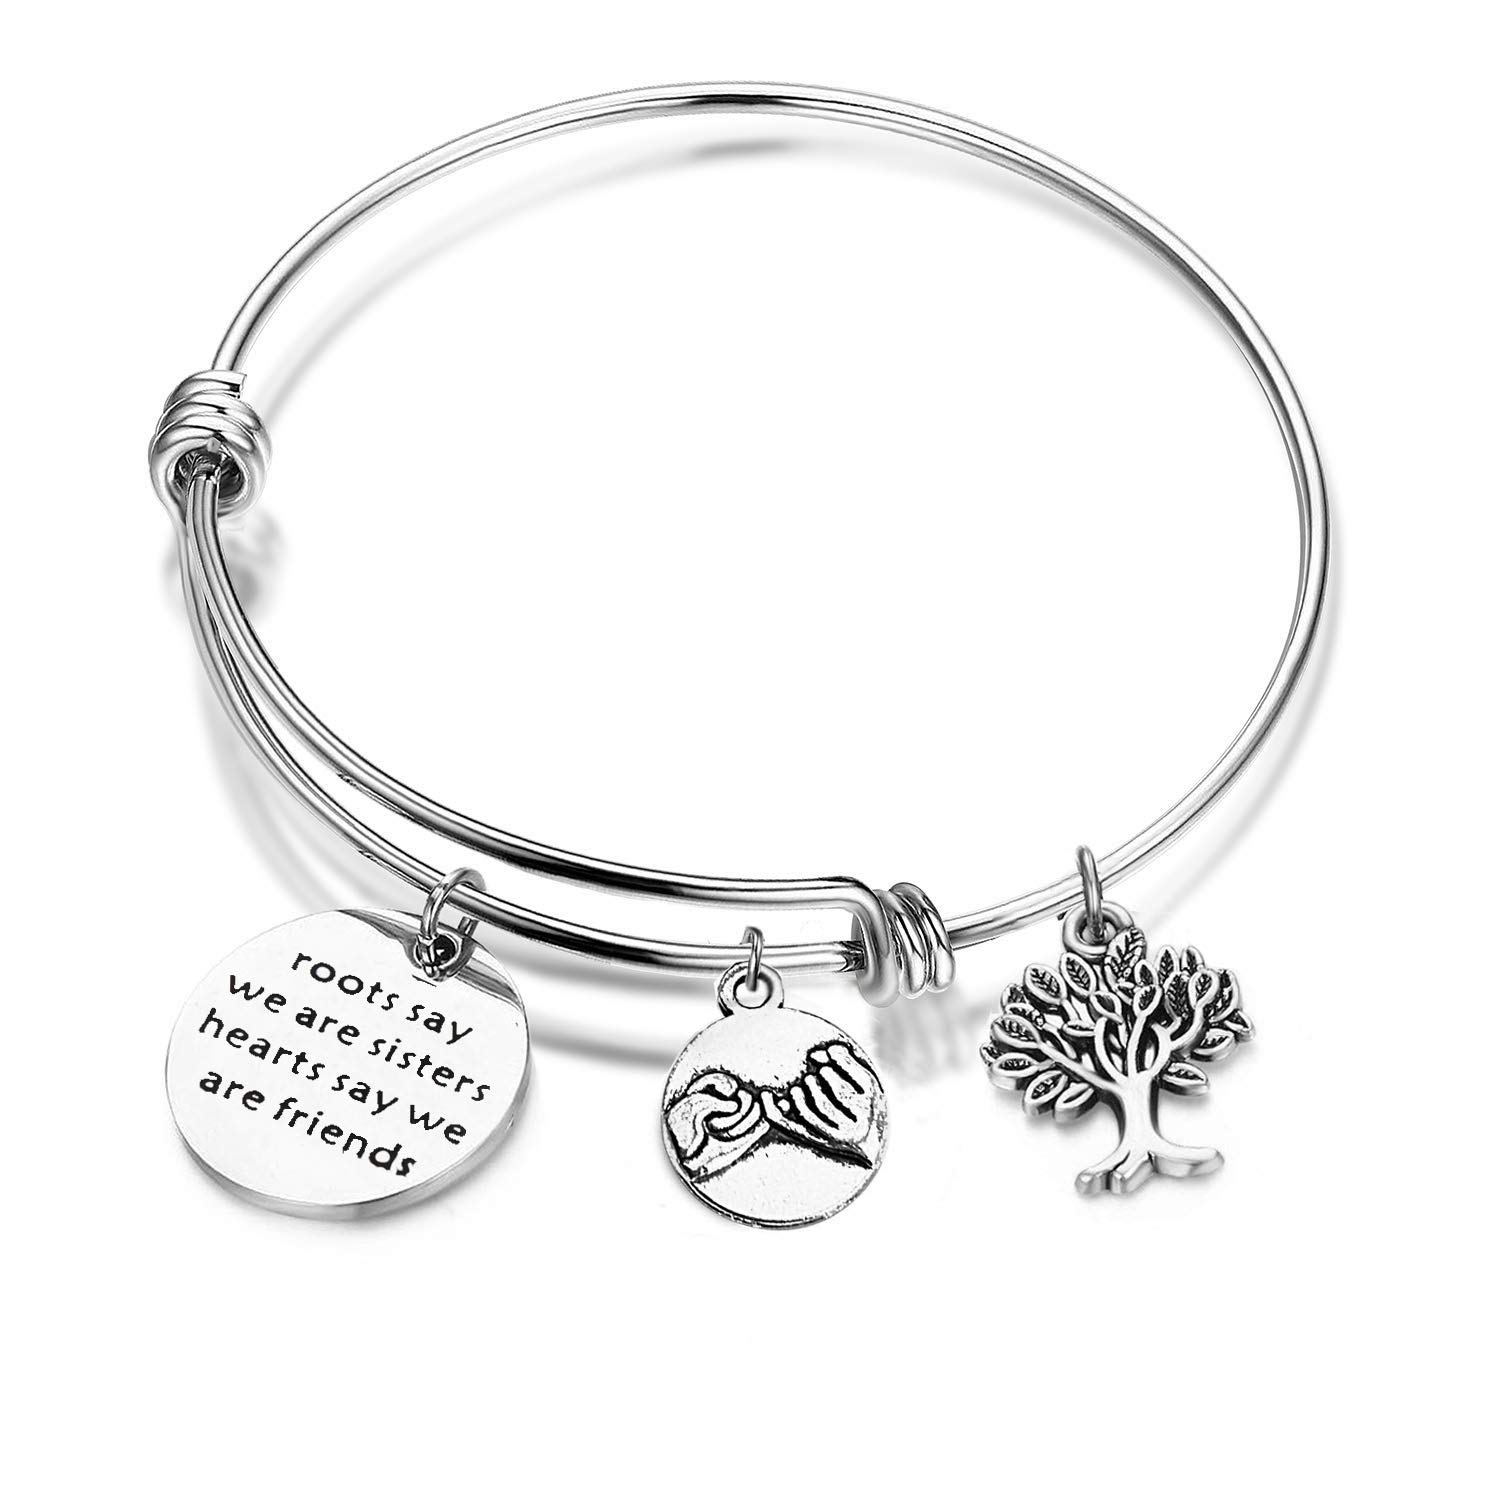 Gzrlyf Sisters Bracelet Our Roots Say Were Sisters Friendship Bracelet Gifts for Sisters Cousins